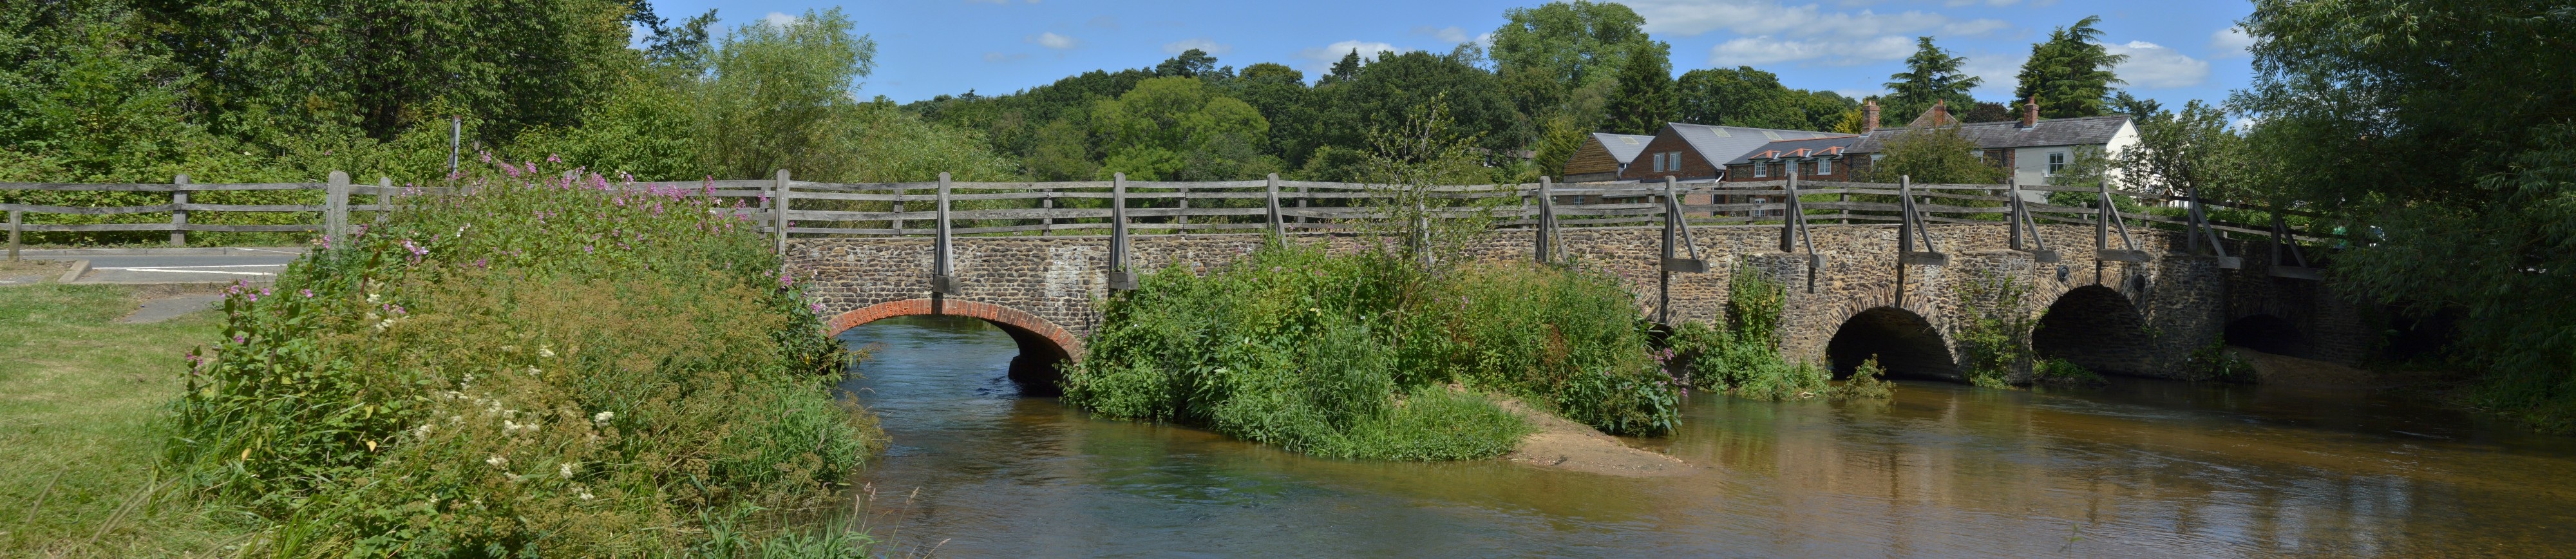 Bridge over the River Wey, Tilford (north east side of green) 2